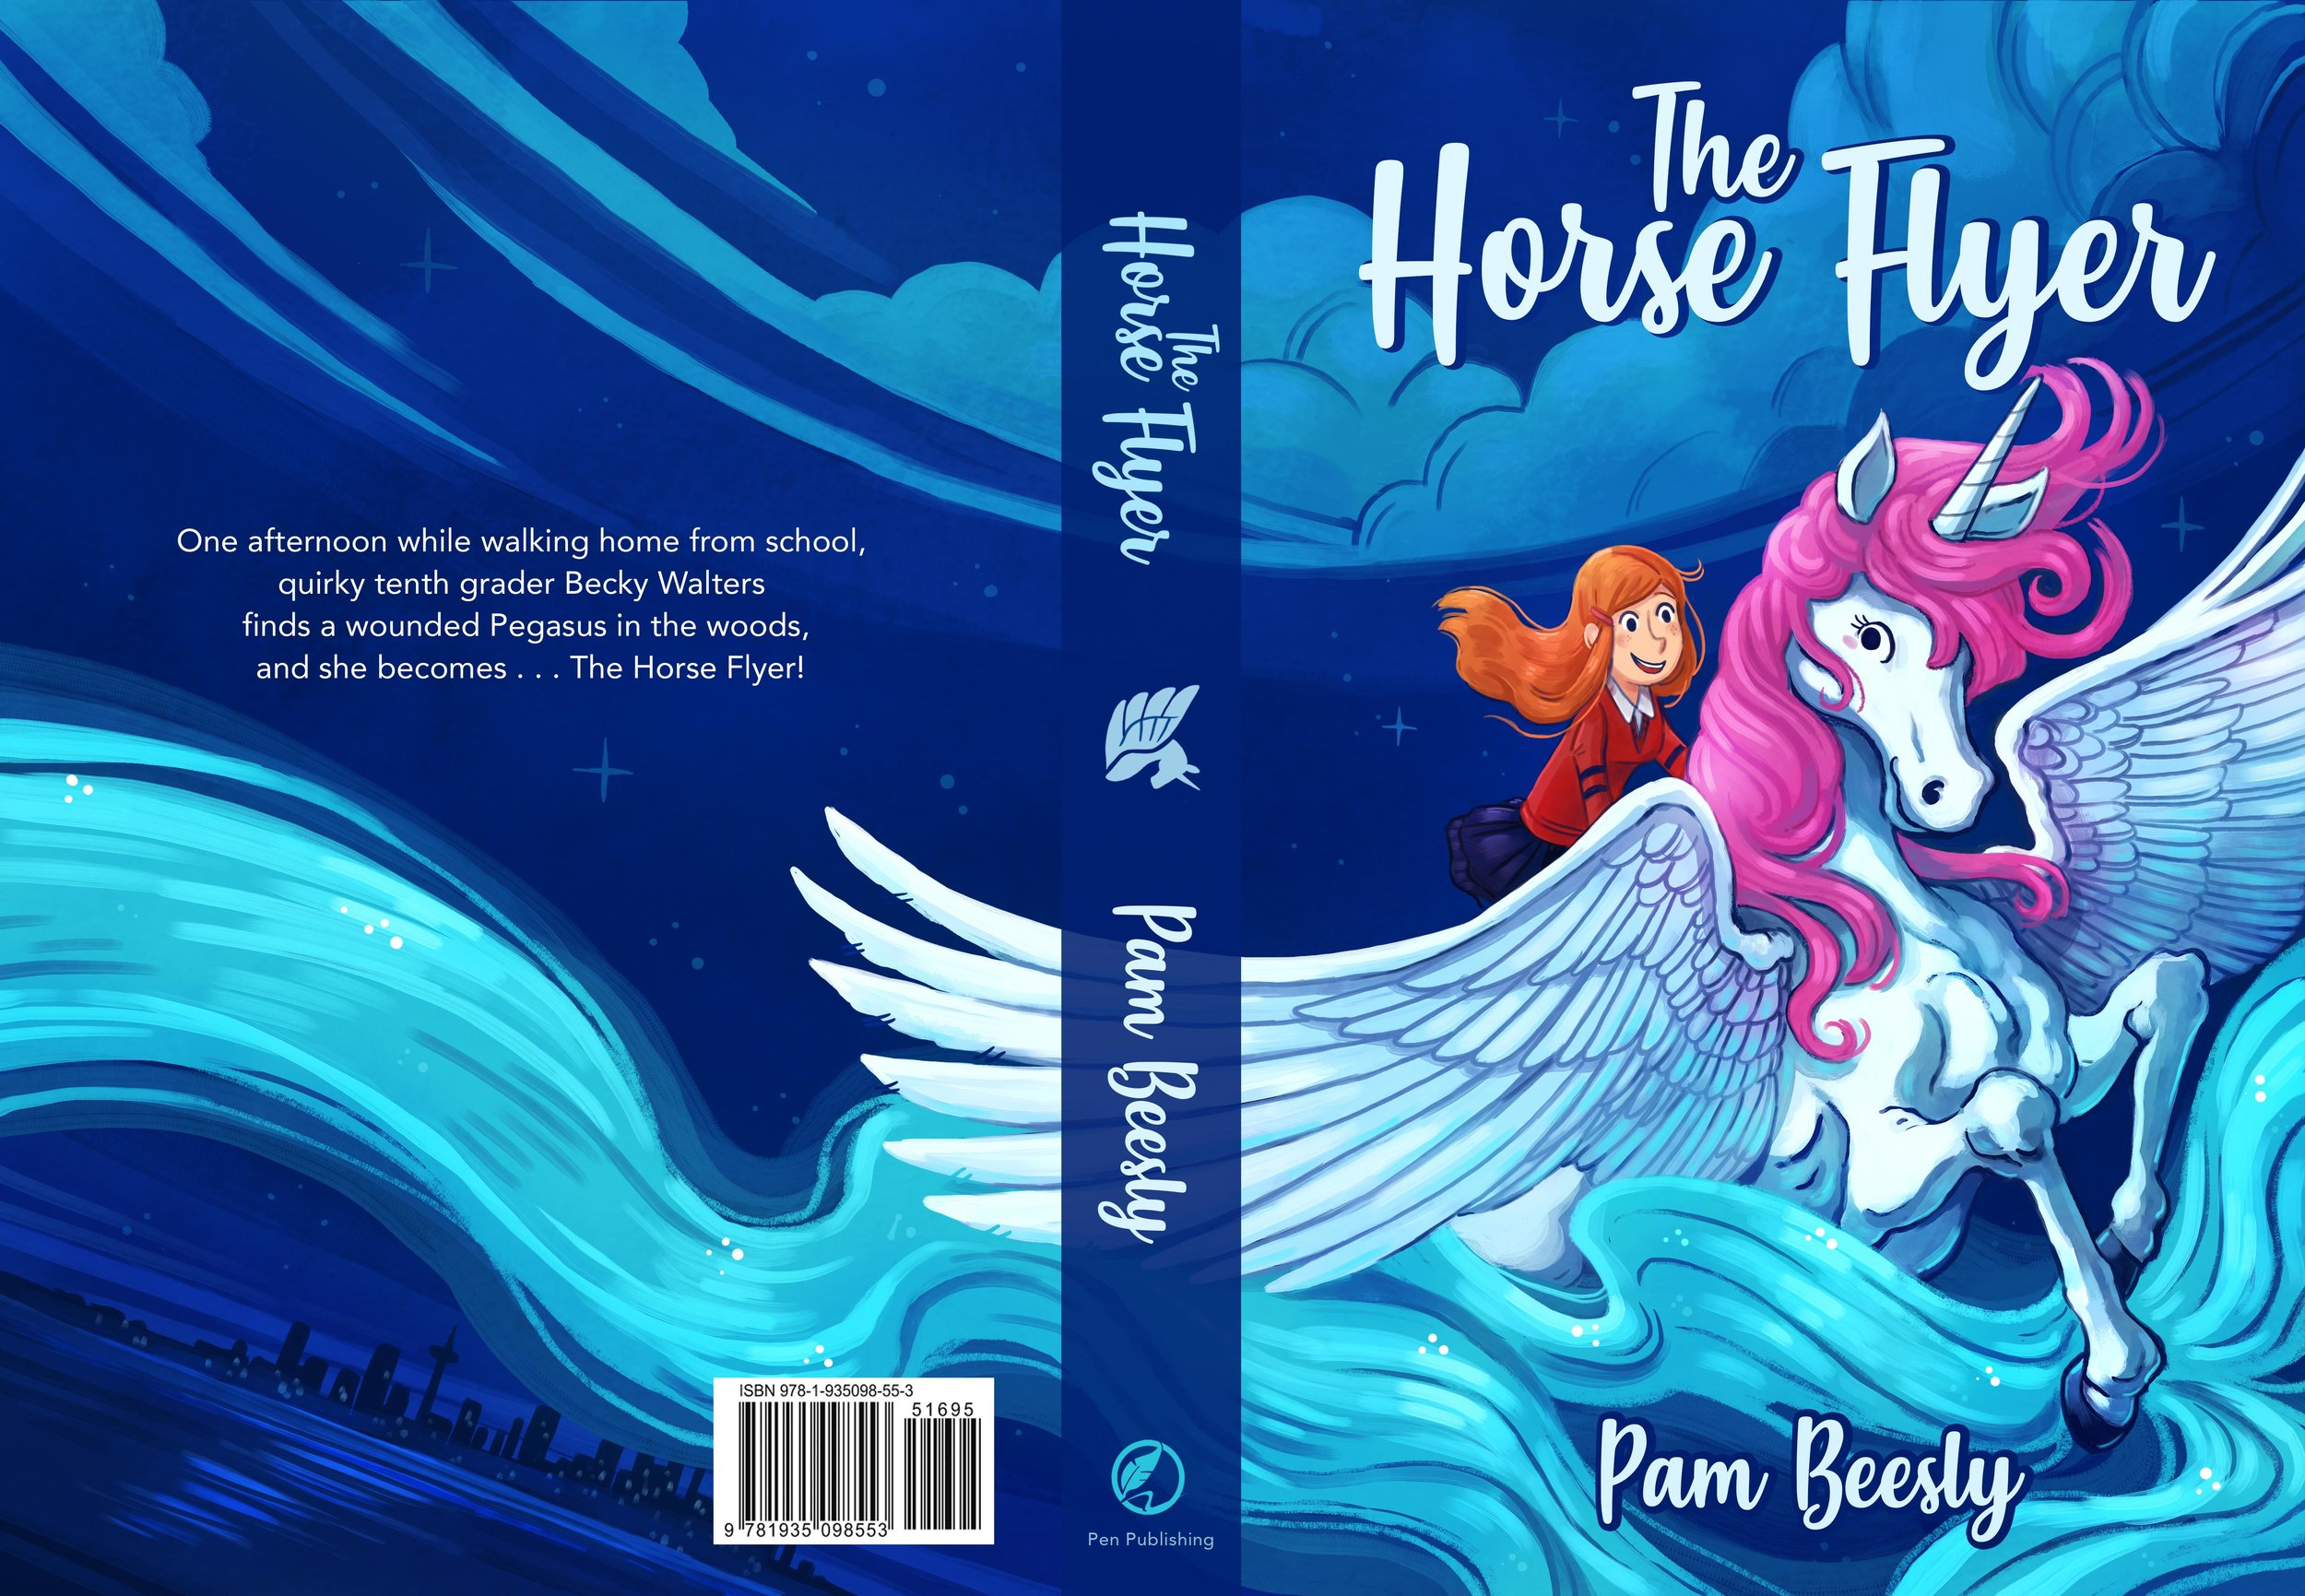 Cover Design I did for Pam Beesly's  The Horse Flyer  book   from The Office